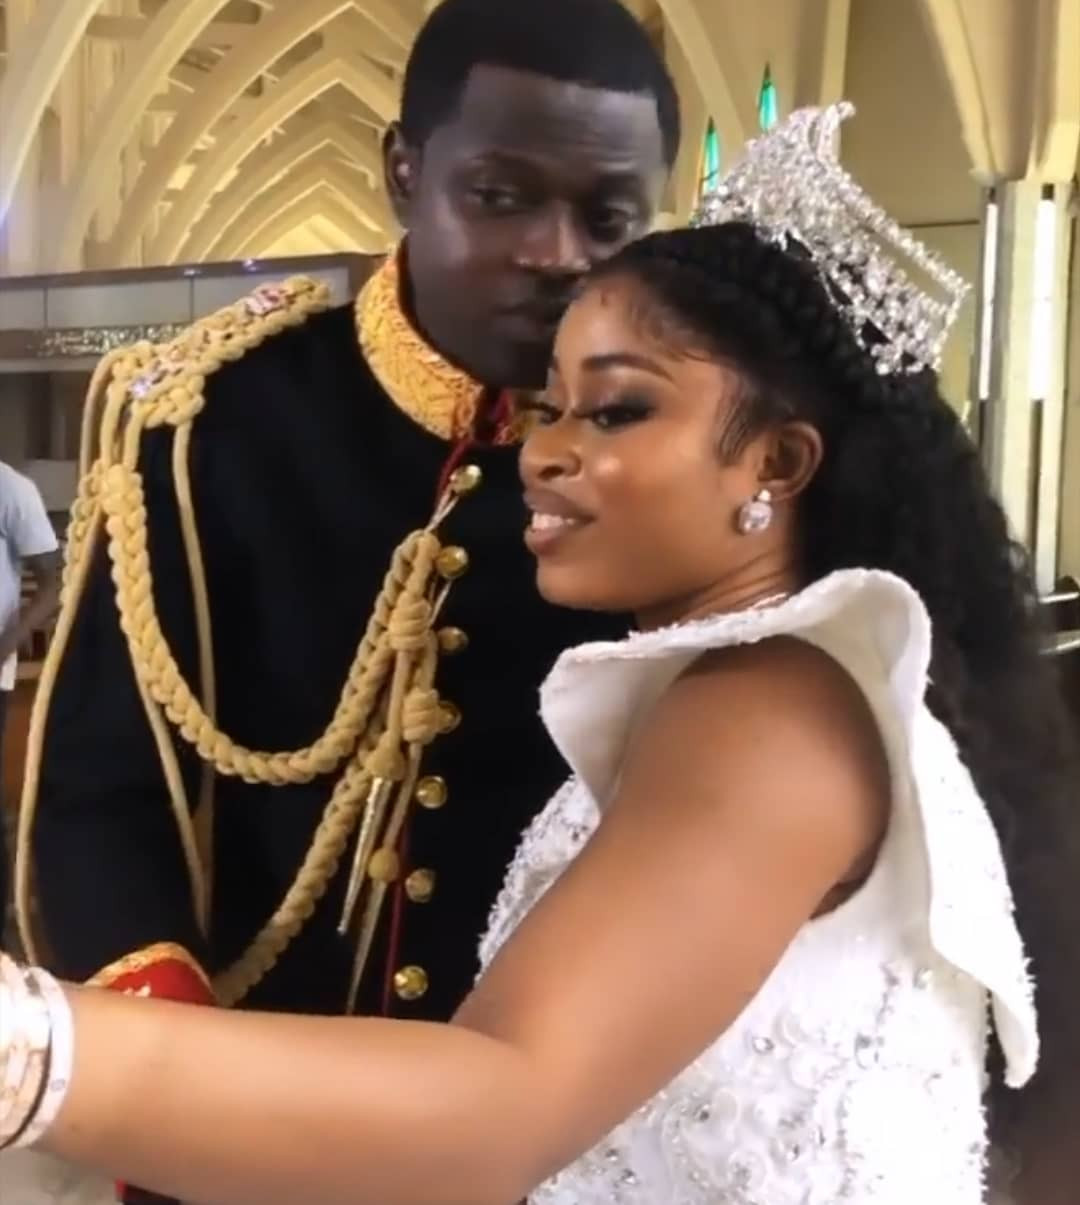 First photos and videos from the wedding of luxury designer, Malivelihood, and Deola Smart, daughter of Senator Adeyemi Smart